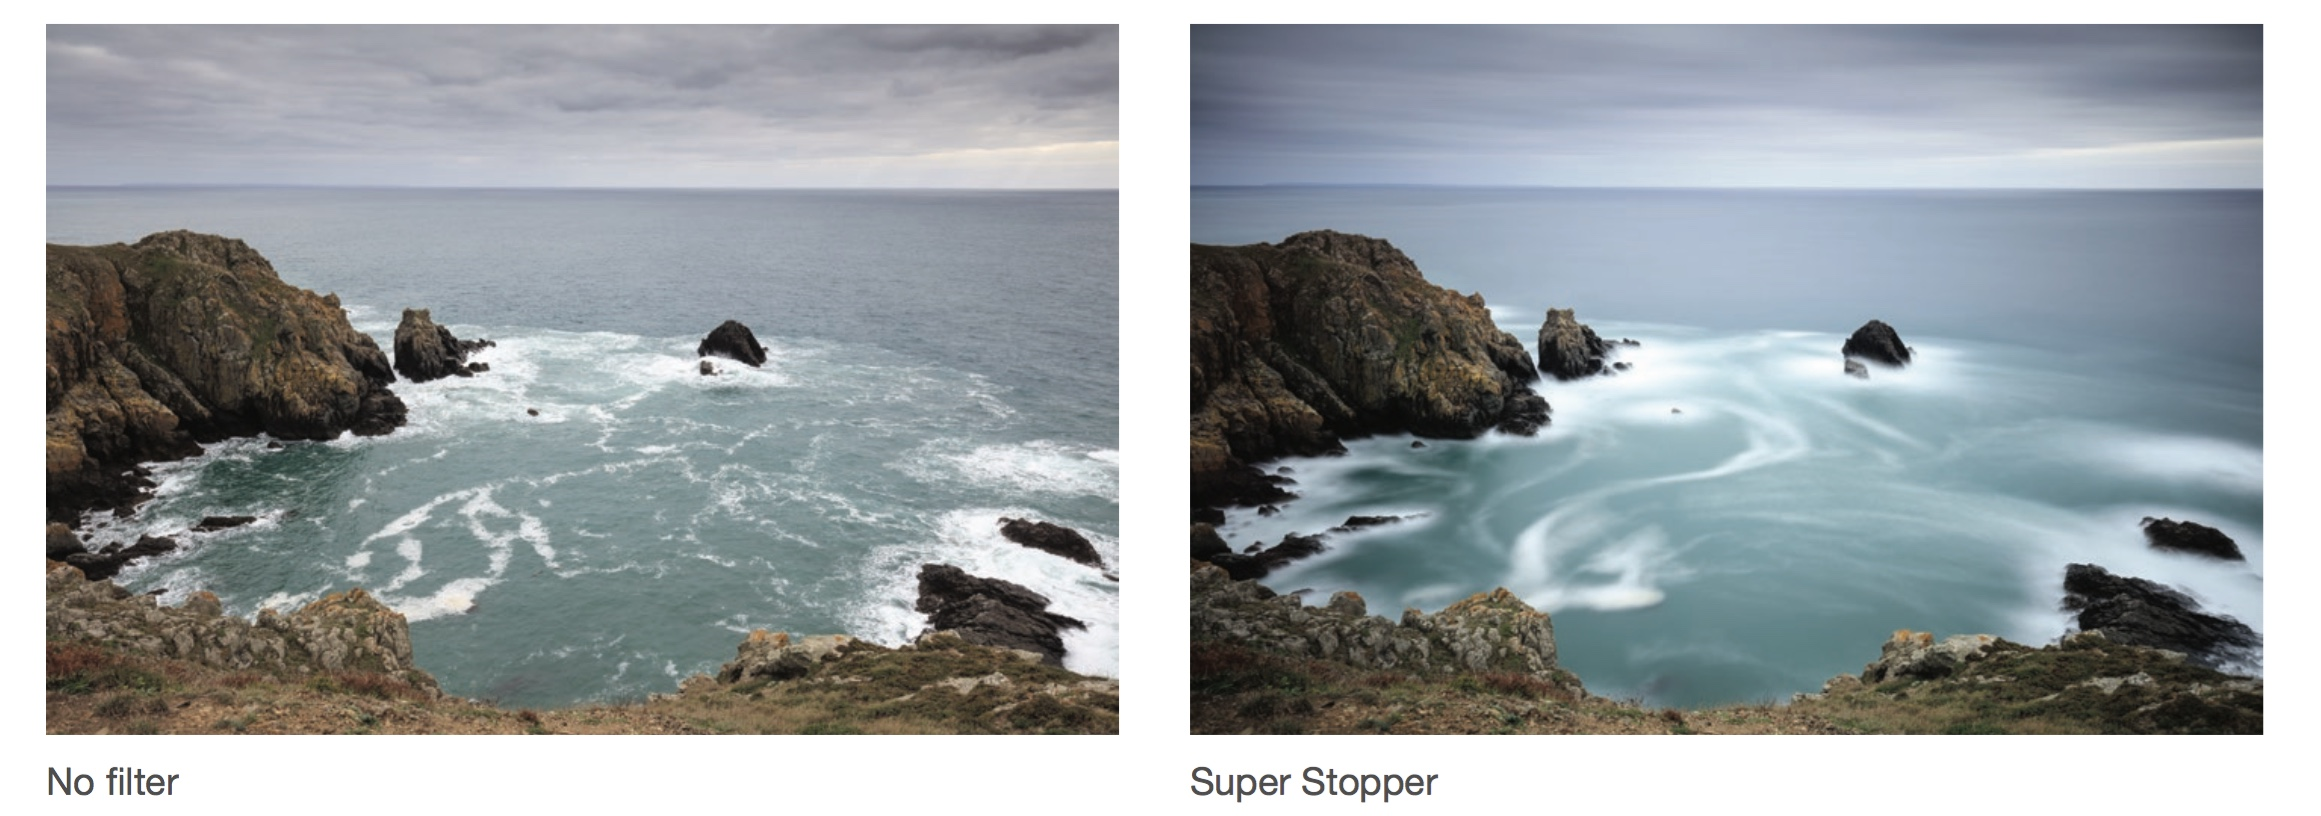 lee-announces-15-stop-super-stopper-nd-filter